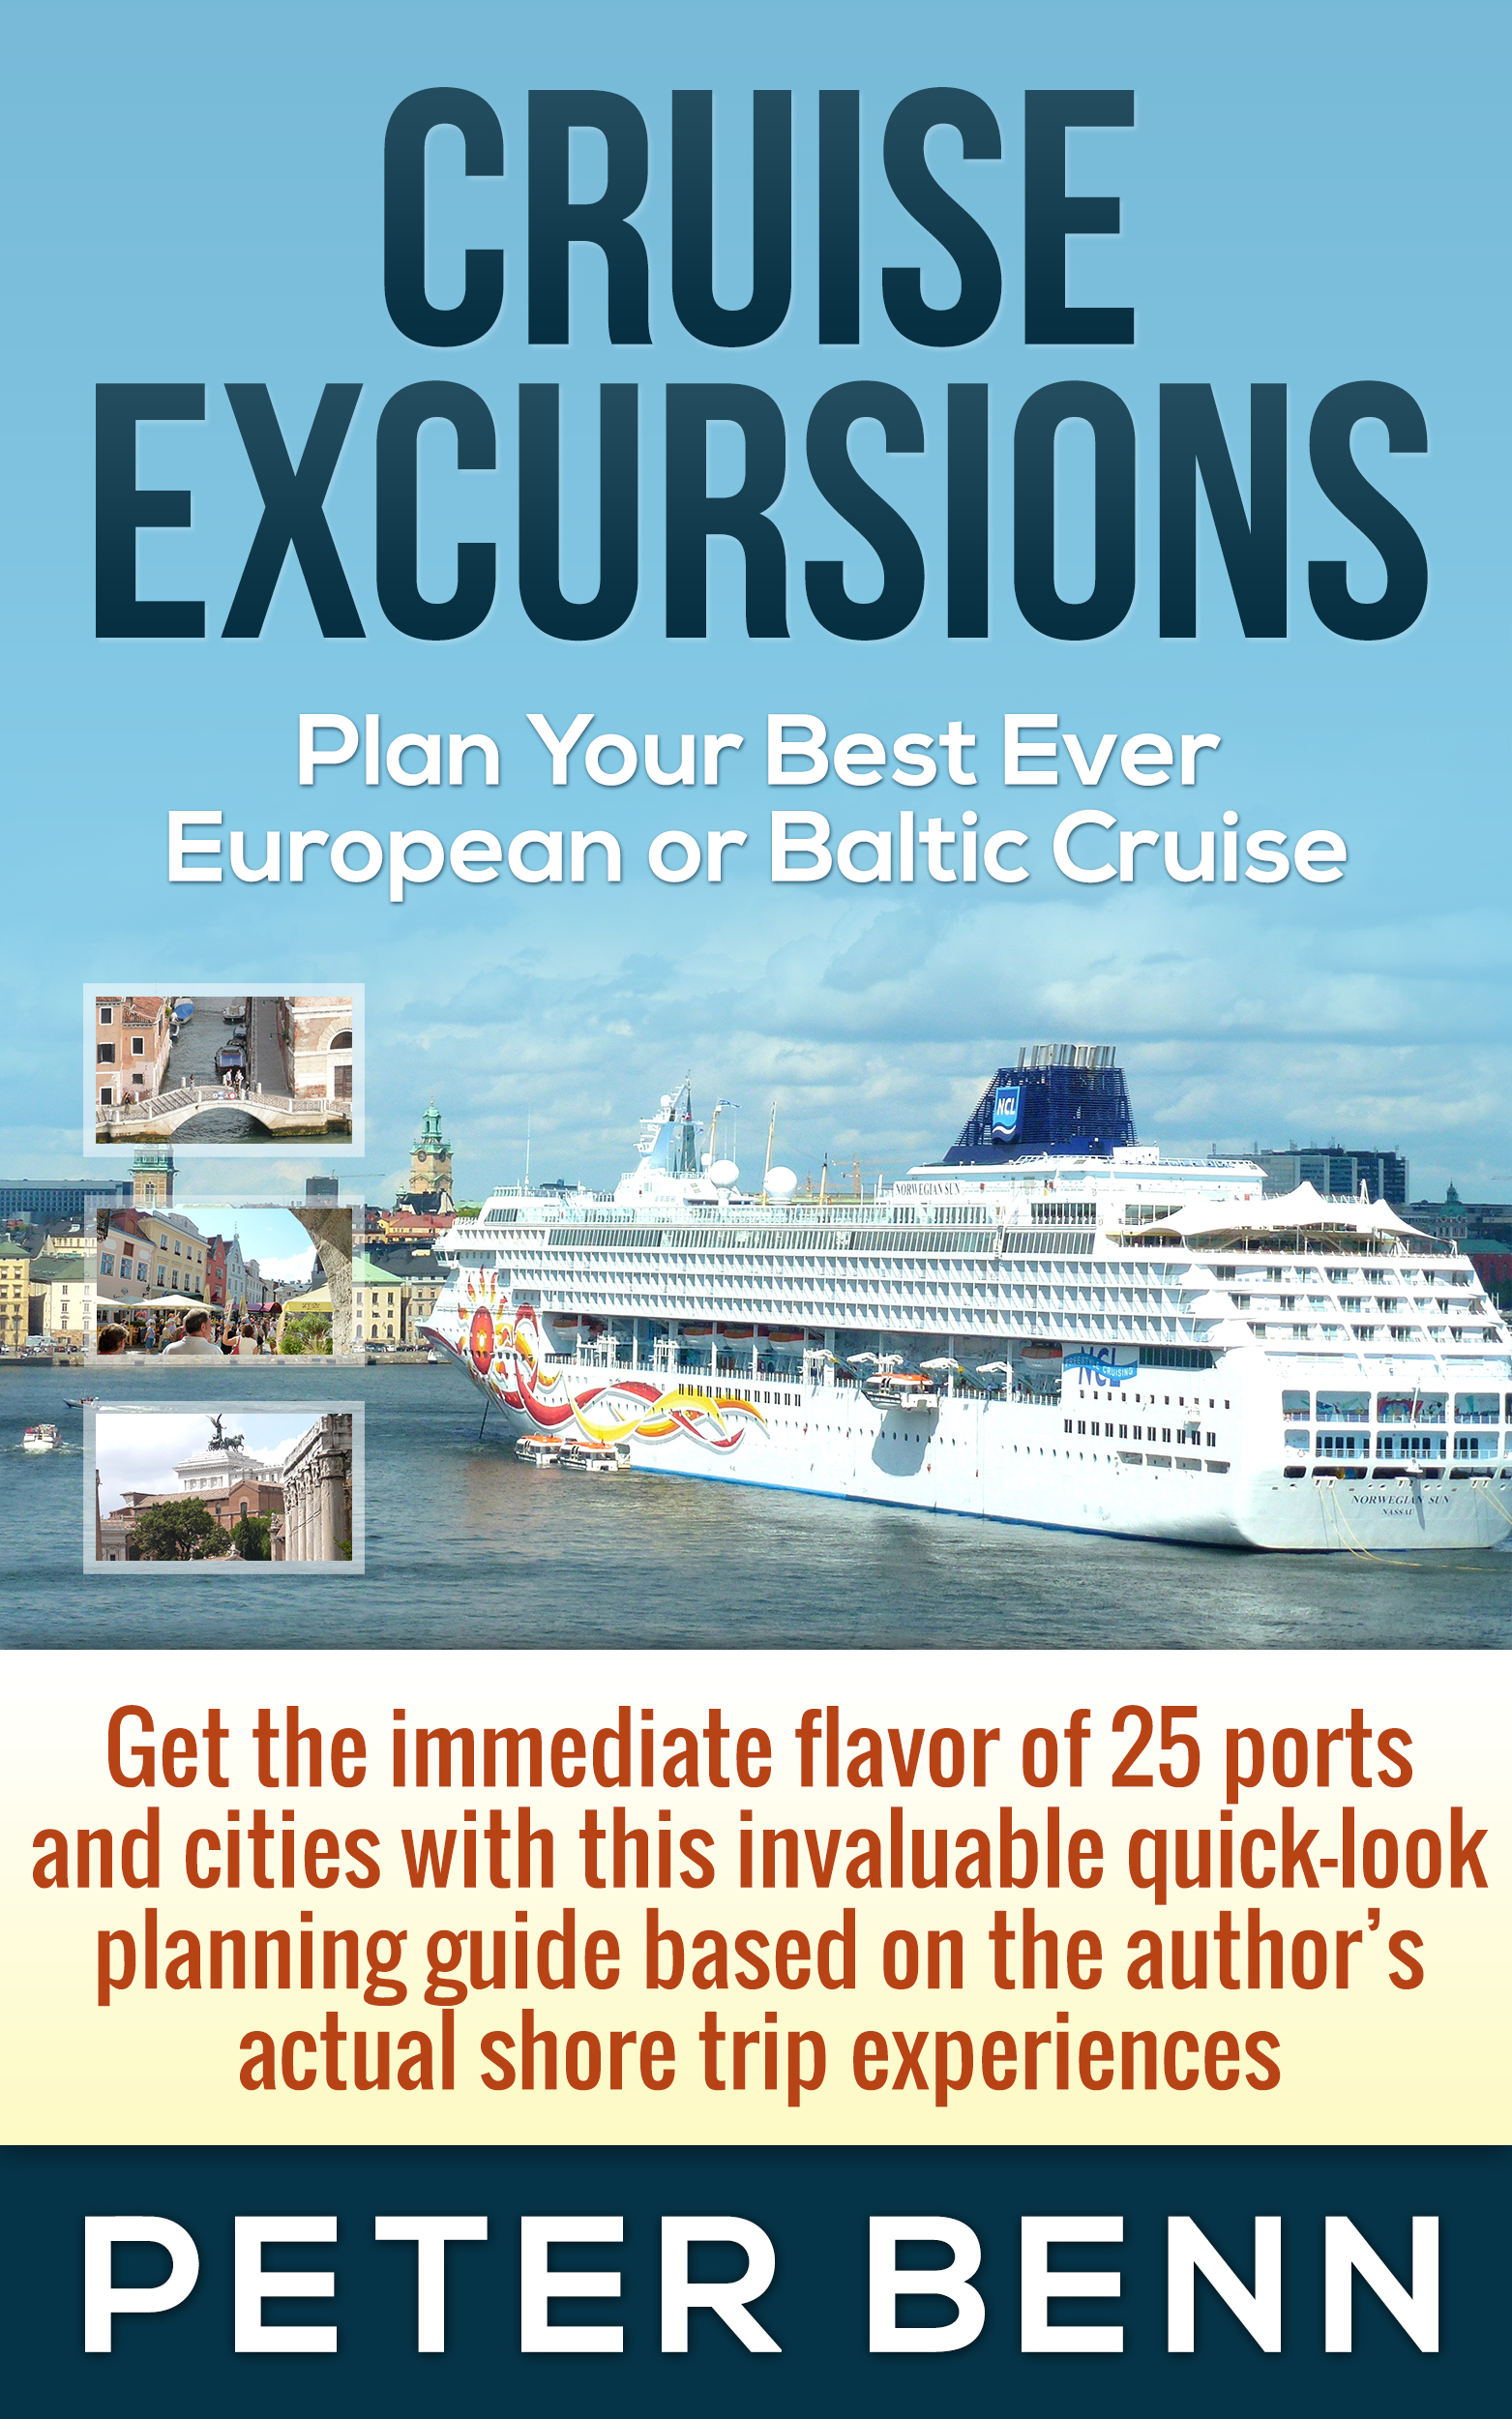 CRUISEEXCURSIONS